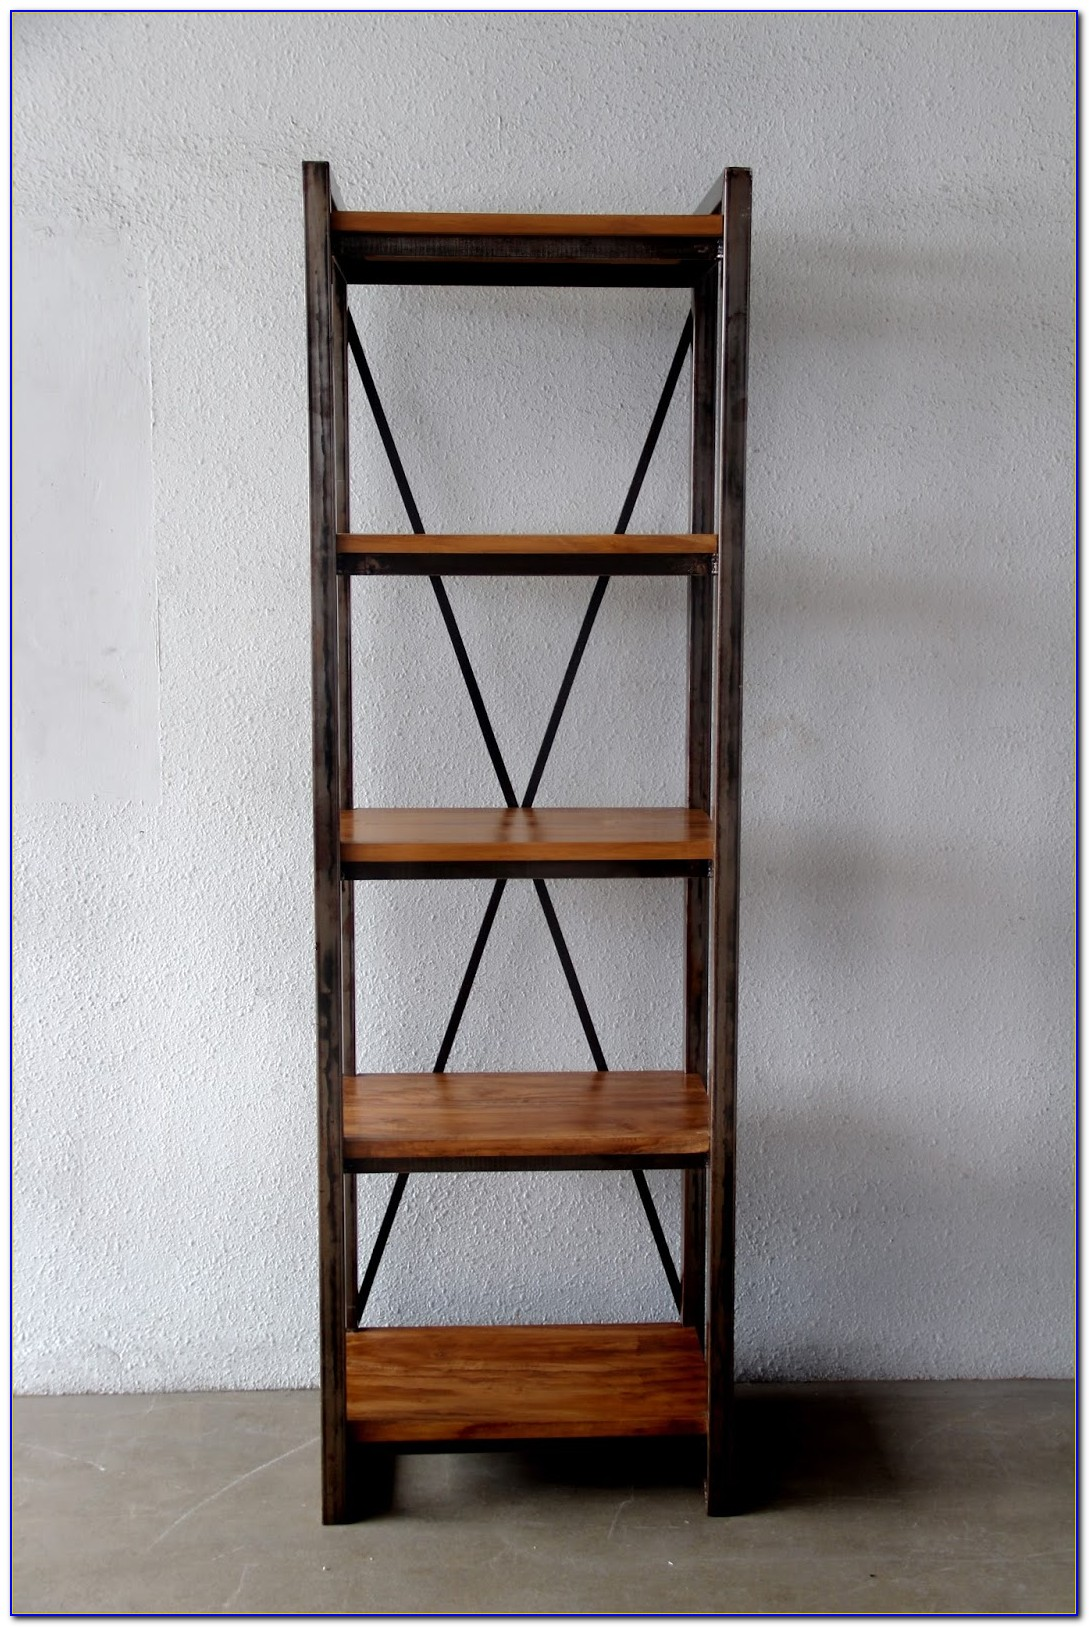 Target Bookcase With Baskets